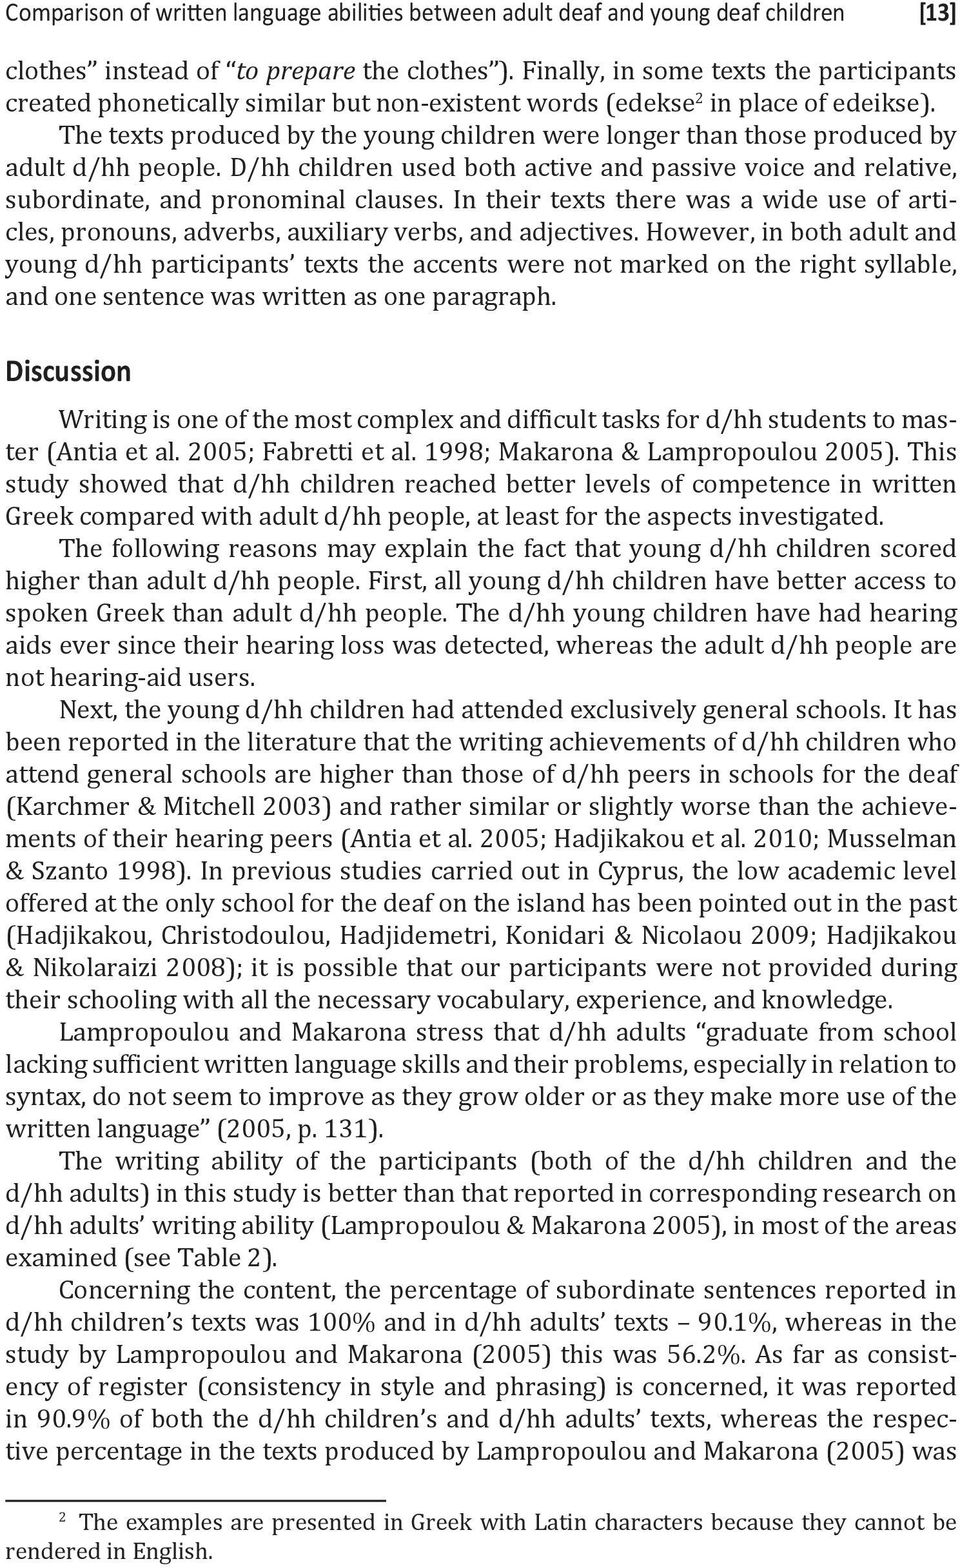 The texts produced by the young children were longer than those produced by adult d/hh people. D/hh children used both active and passive voice and relative, subordinate, and pronominal clauses.